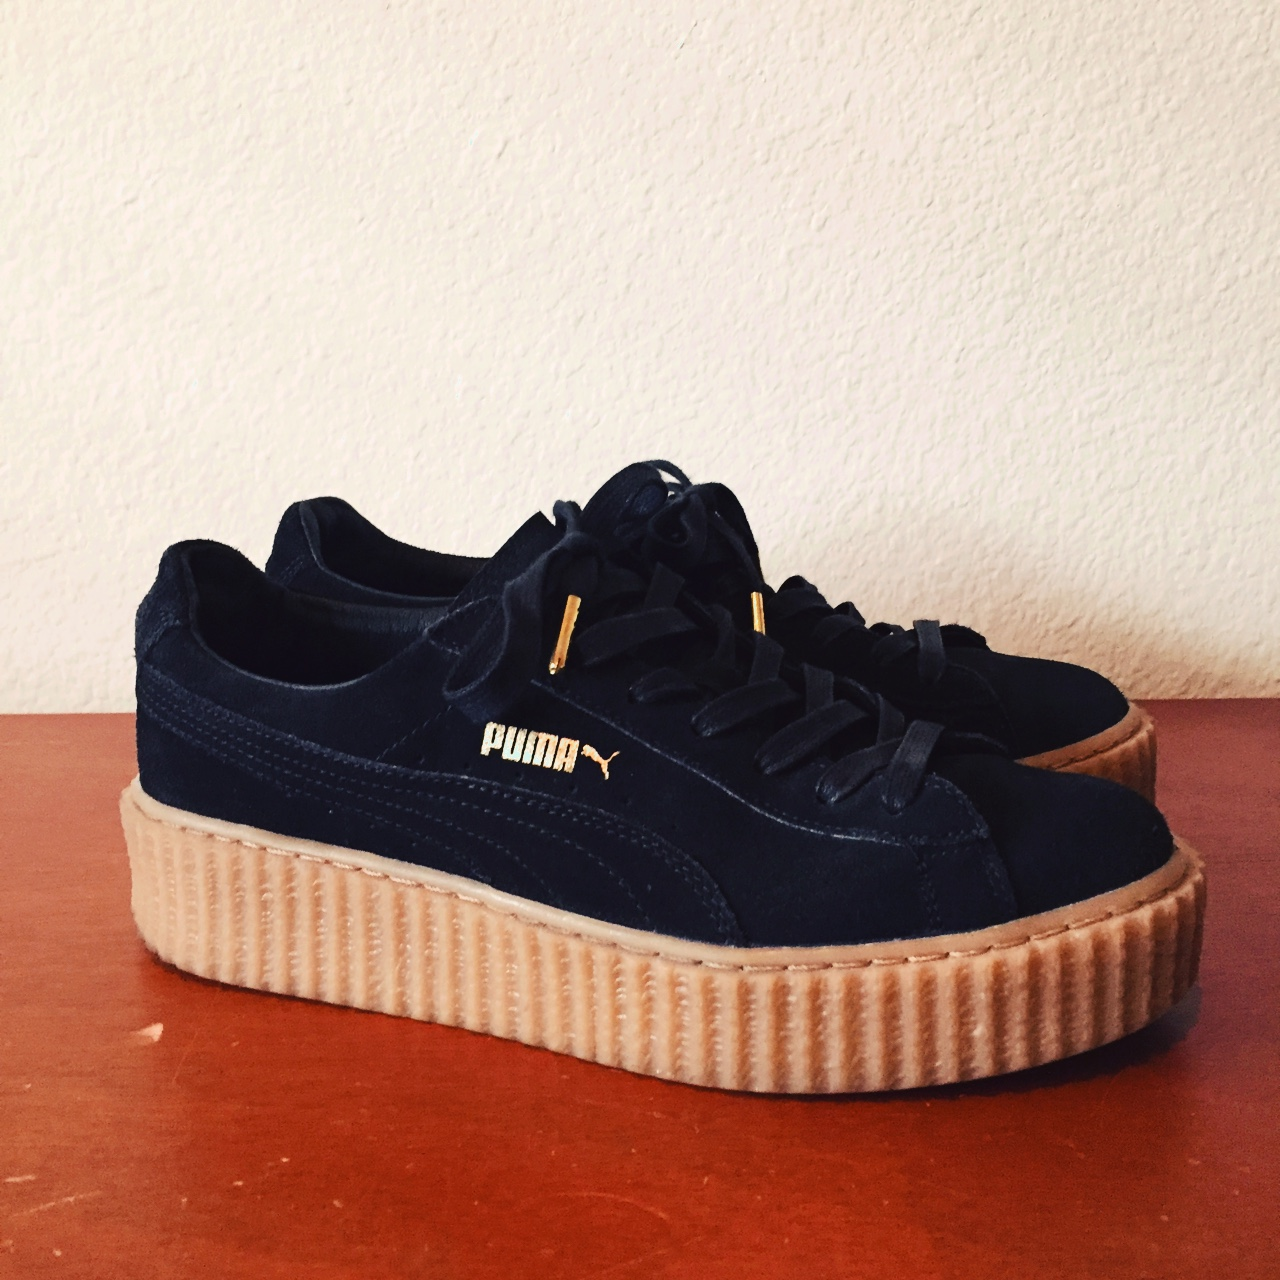 various colors b720b 89fc2 PUMA Fenty by Rihanna Creepers in black suede with ...